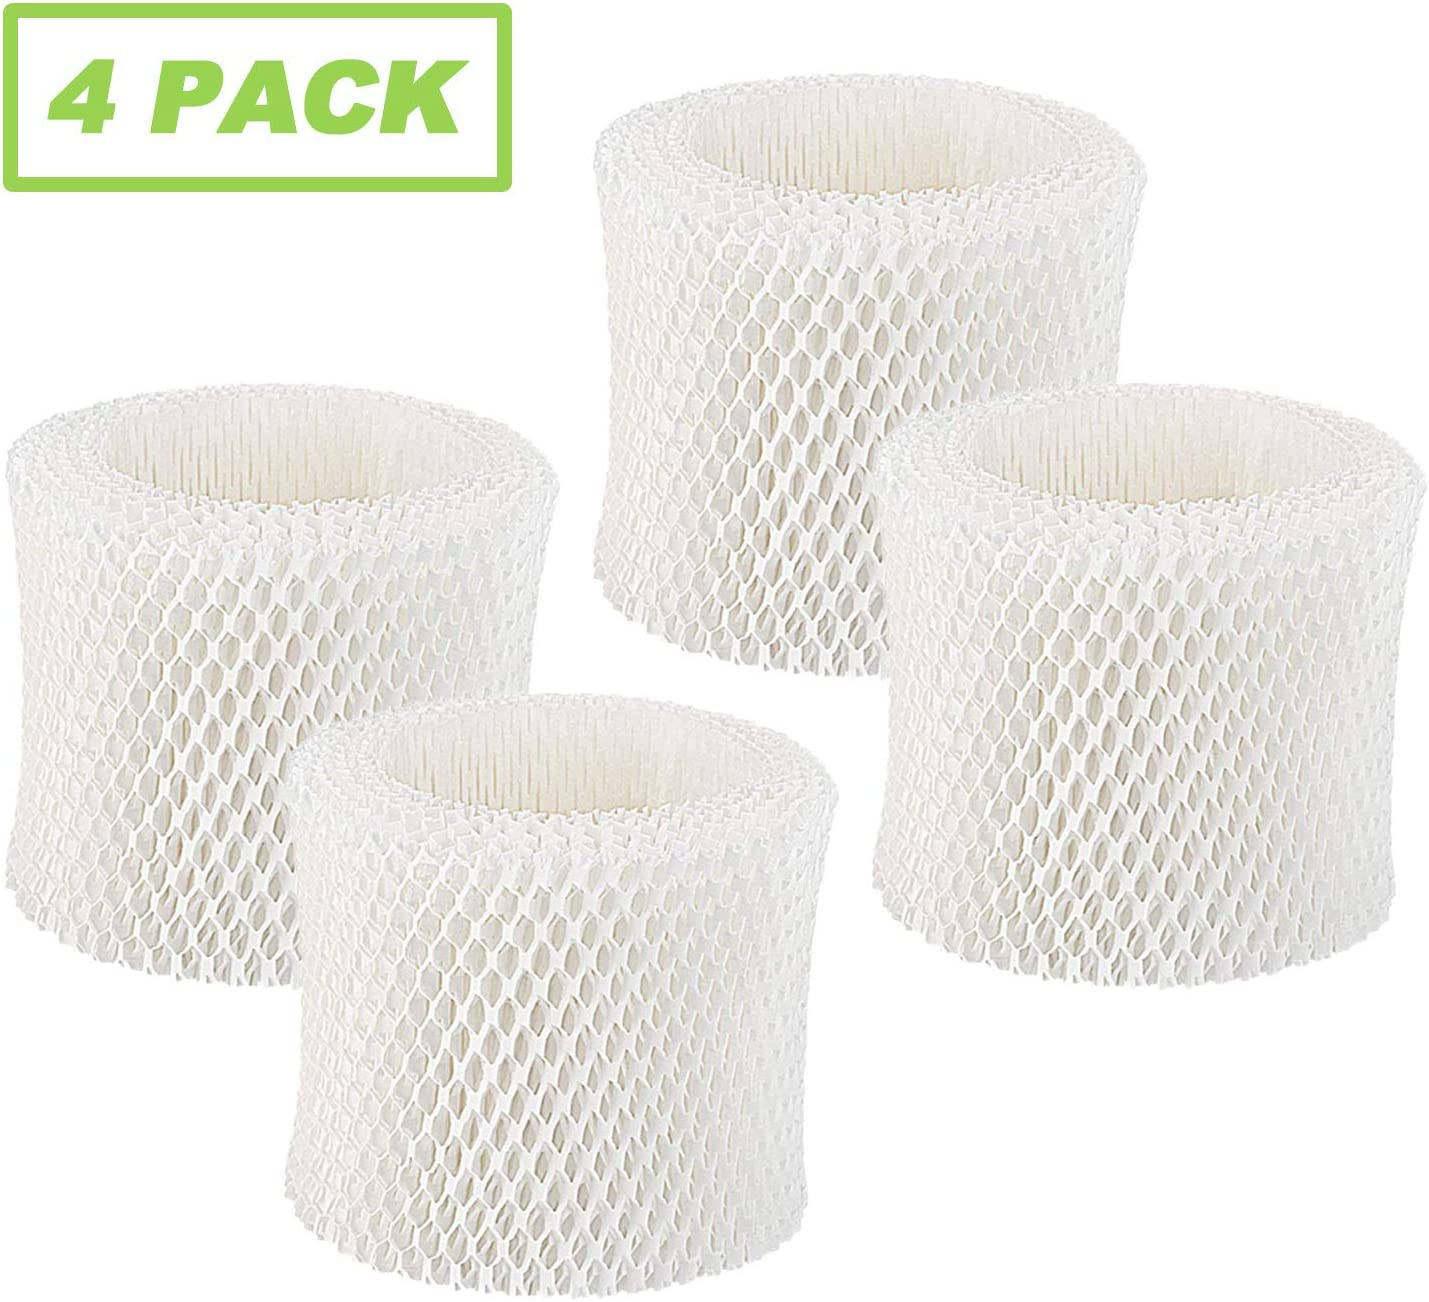 IOYIJOI Humidifier Filter for Honeywell HAC-504, HAC-504AW Series and Filter A, HCM-300, HCM-500, HCM-600, HCM-700, HCM-1000, HCM-2000 and Other Cool Mist Humidifiers (4 Pack)